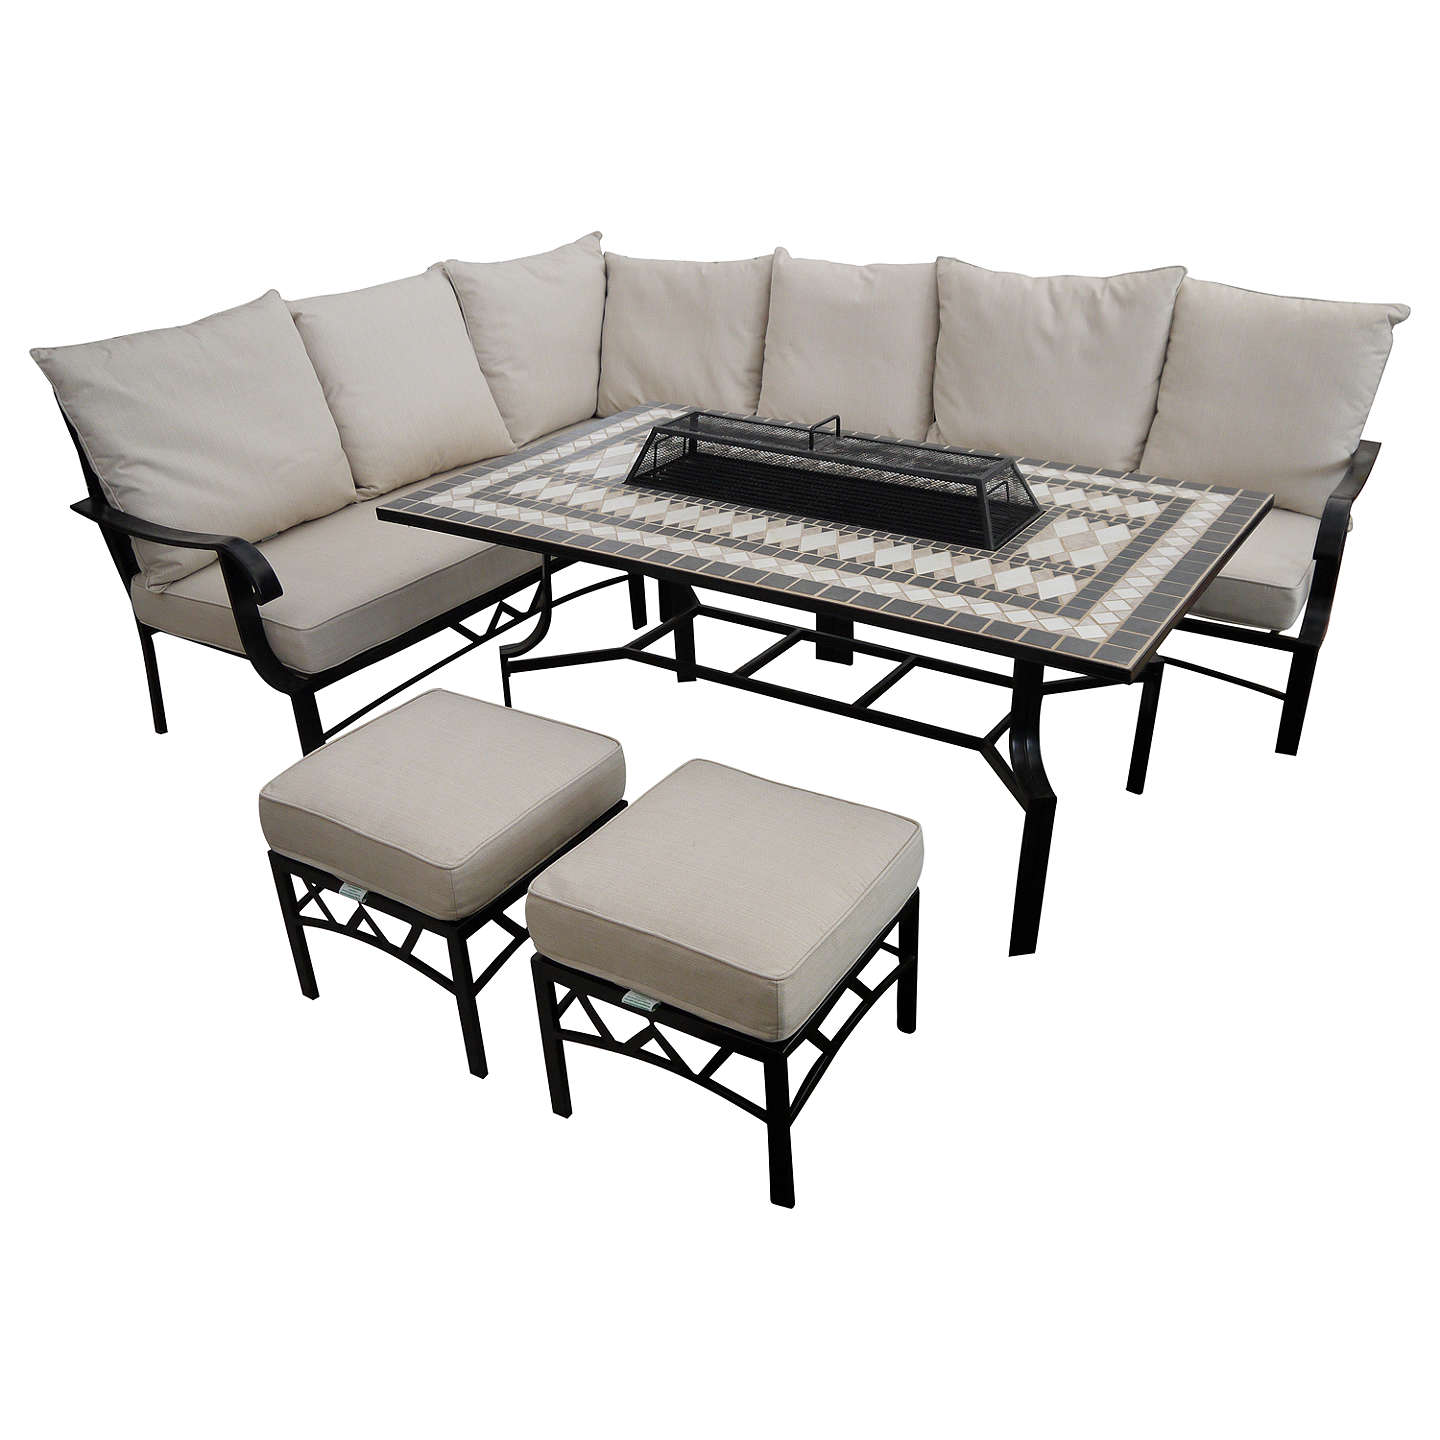 BuyLG Outdoor Casablanca 7 Seater Garden Modular Dining Table And Chairs  Set With Firepit, Charcoal ...